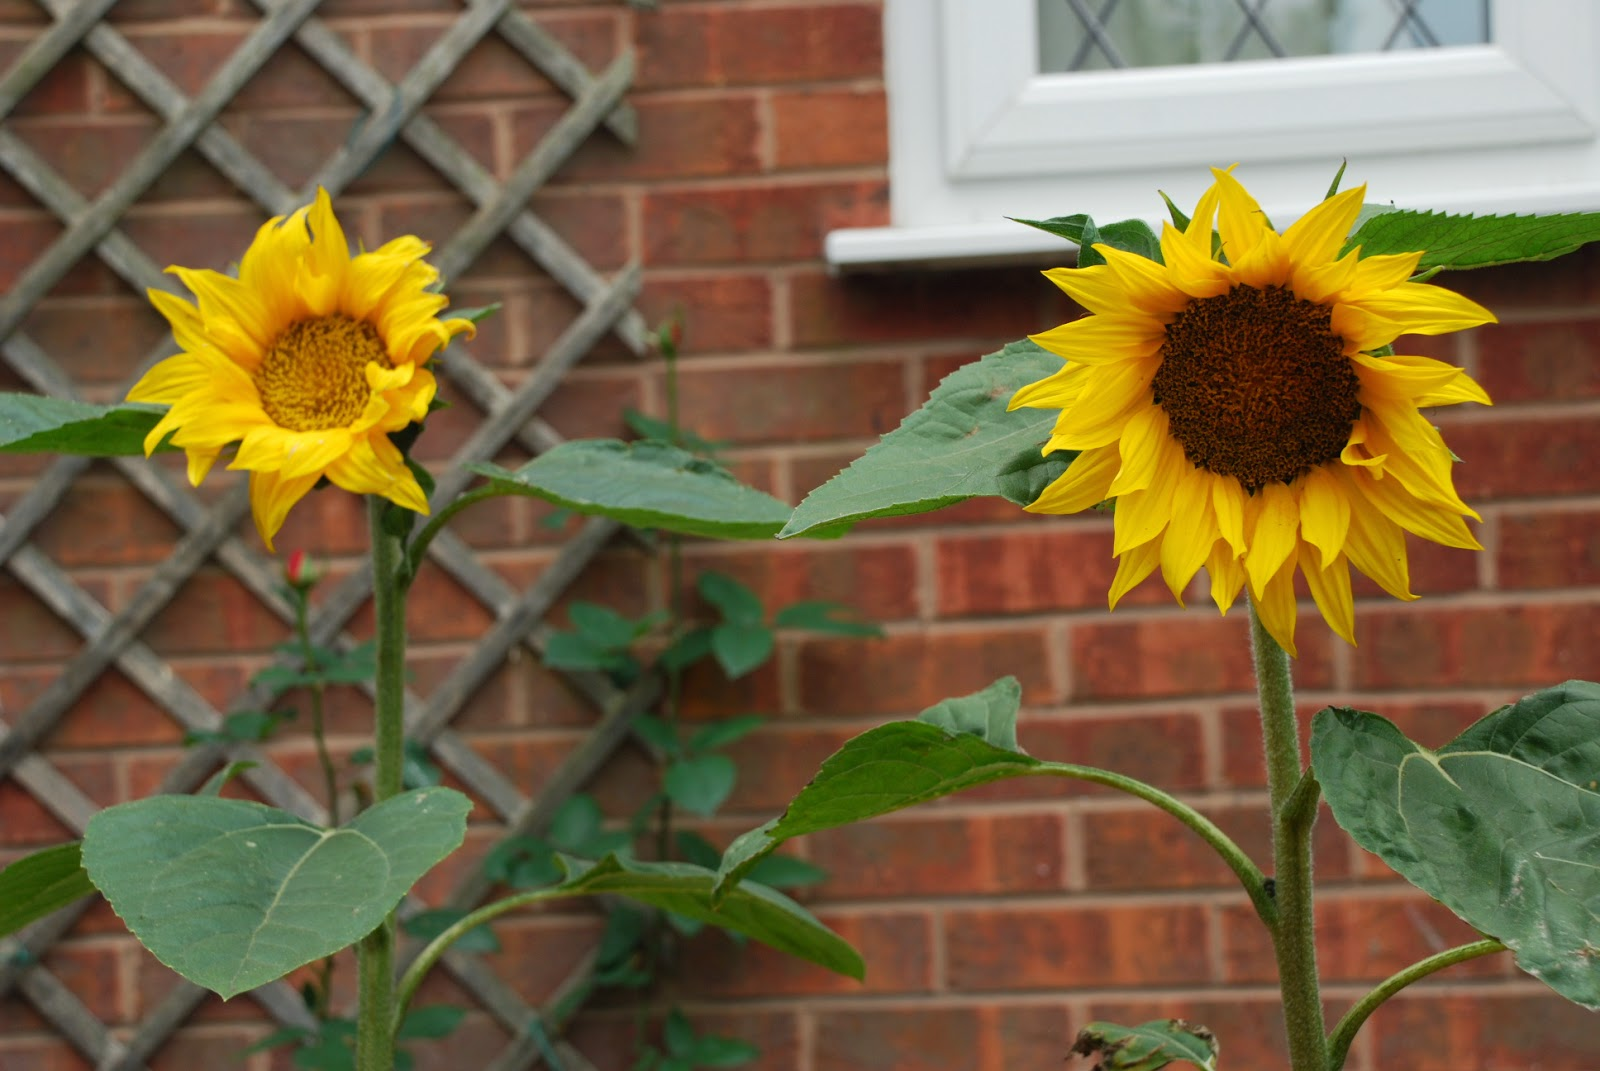 image of two sunflowers